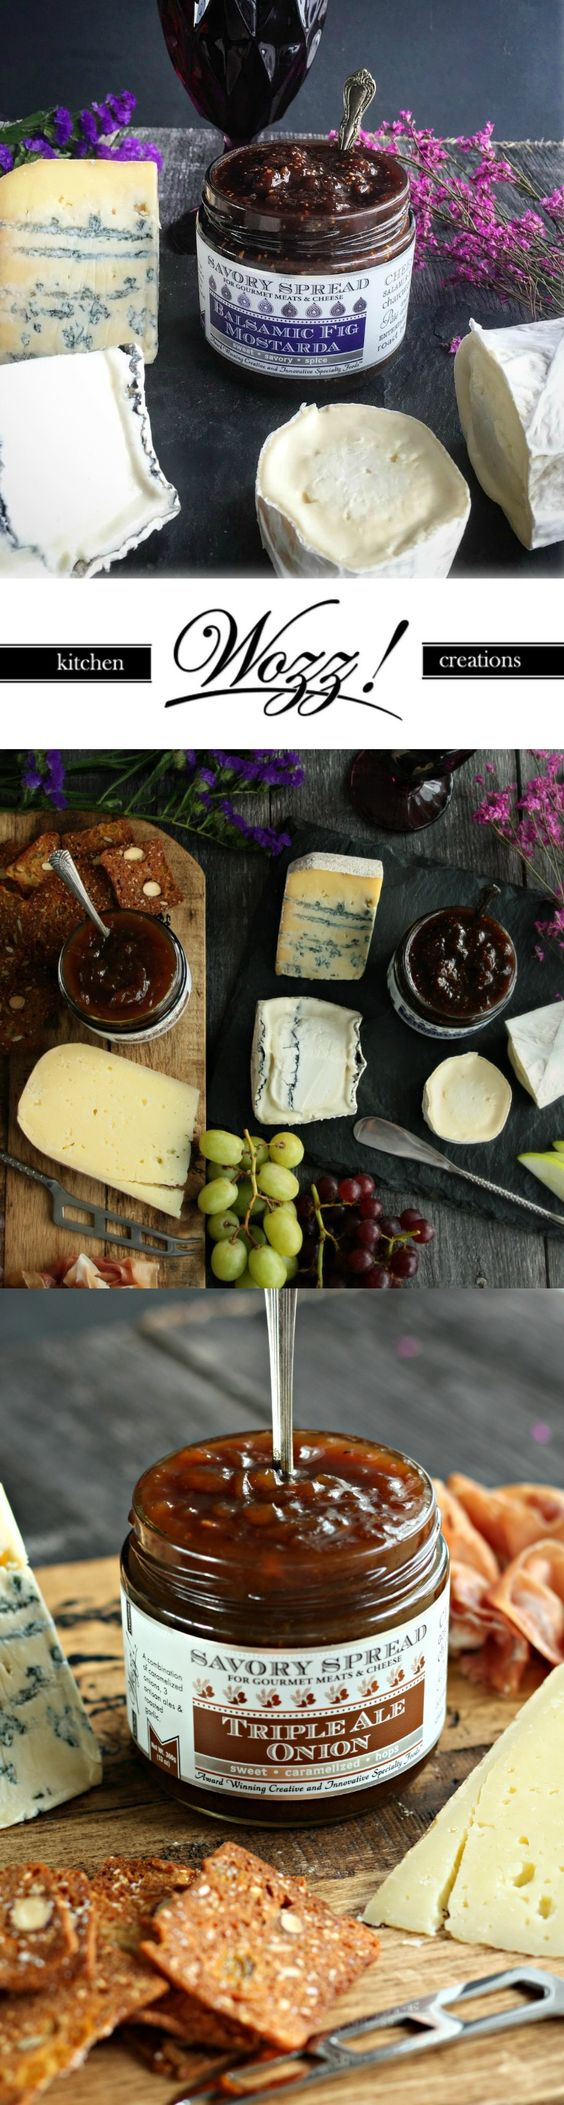 Wozz ultimate condiment and cheese pairing guide for easy yet elegant entertaining.  Small batch handcrafted condiments ideal for a beautiful cheese plate!: